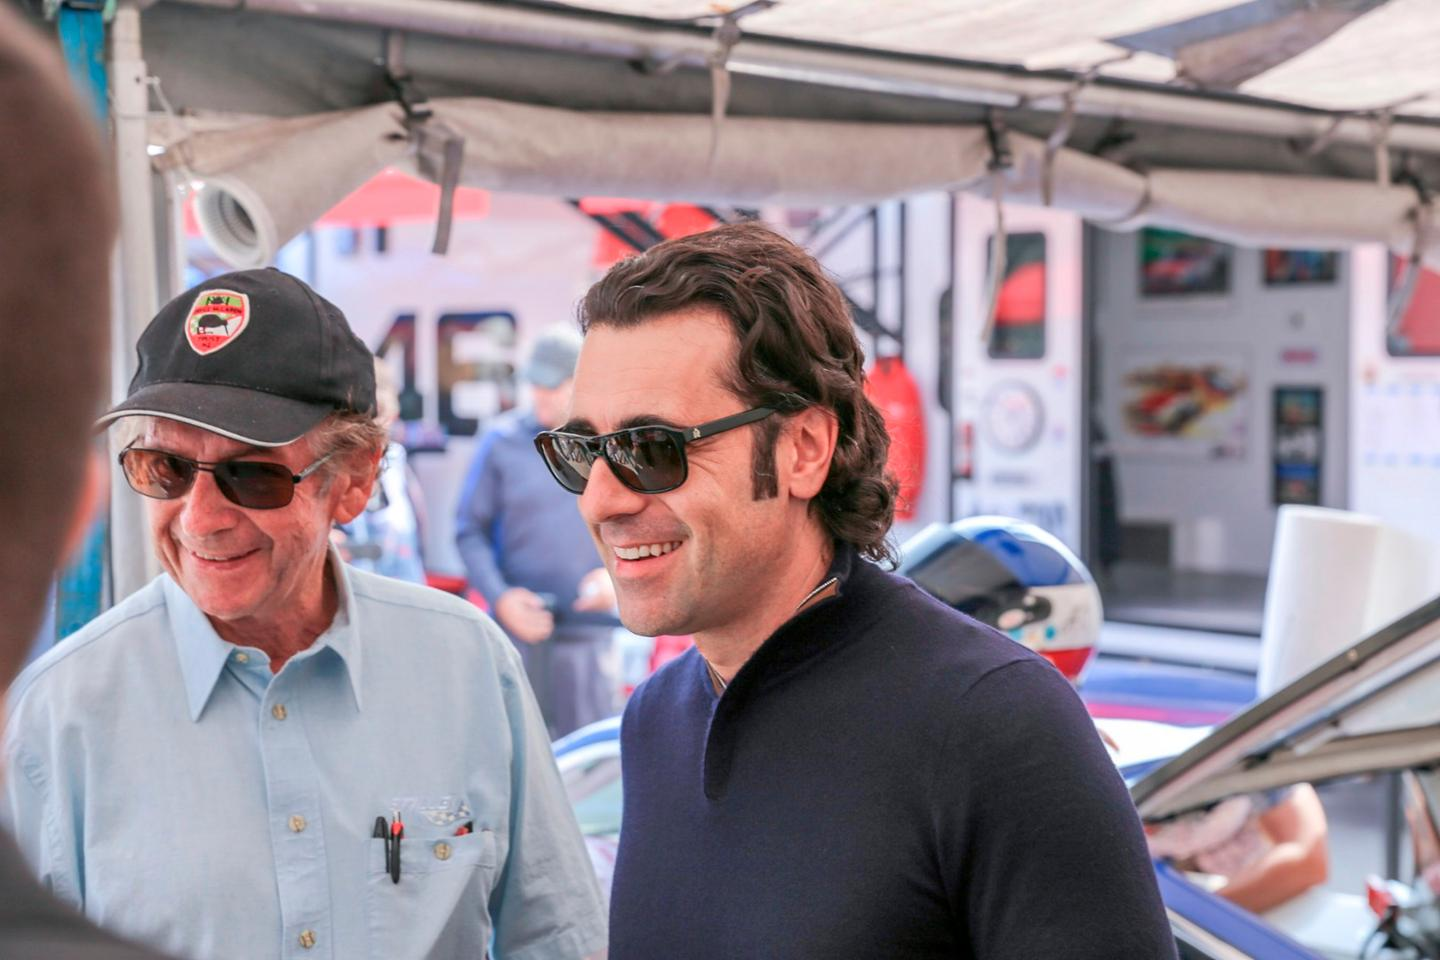 Four time Indy Car series champ and three-time Indy 500 winner, Dario Franchitti, was on hand to give New Atlas the official tour of various Nissans, new and old.